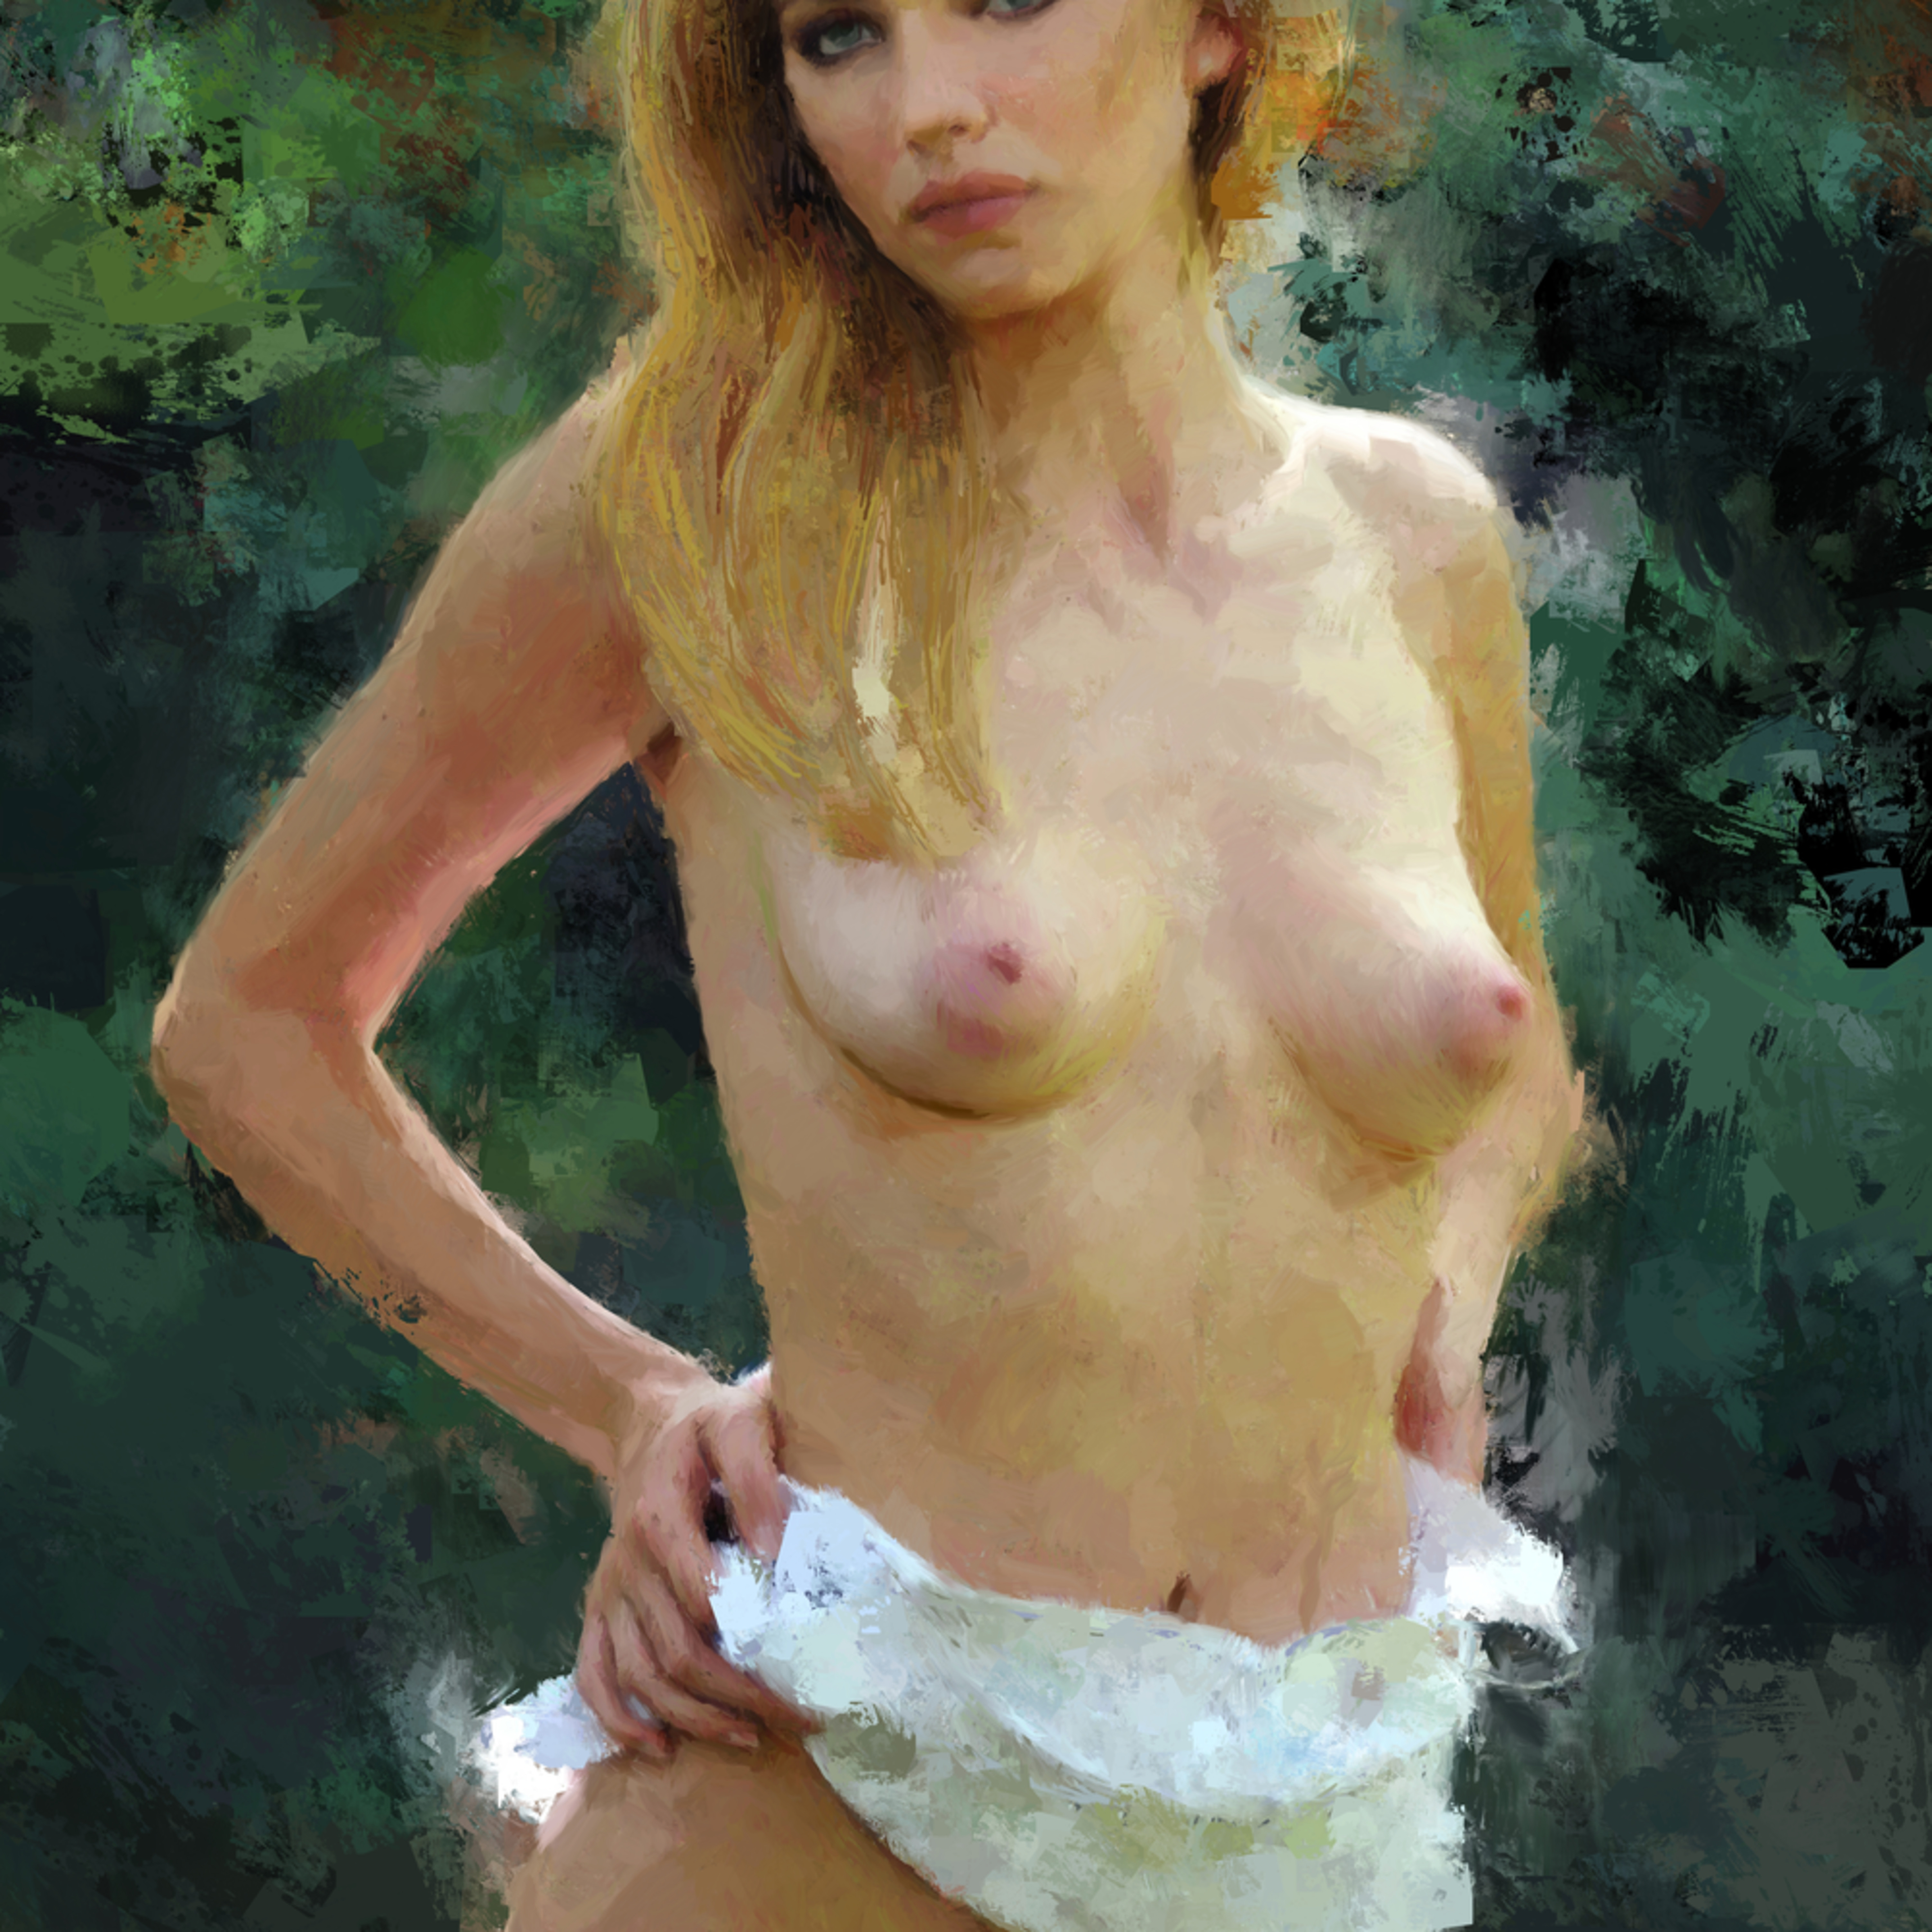 Nude outdoors 30x20dig m9trfc